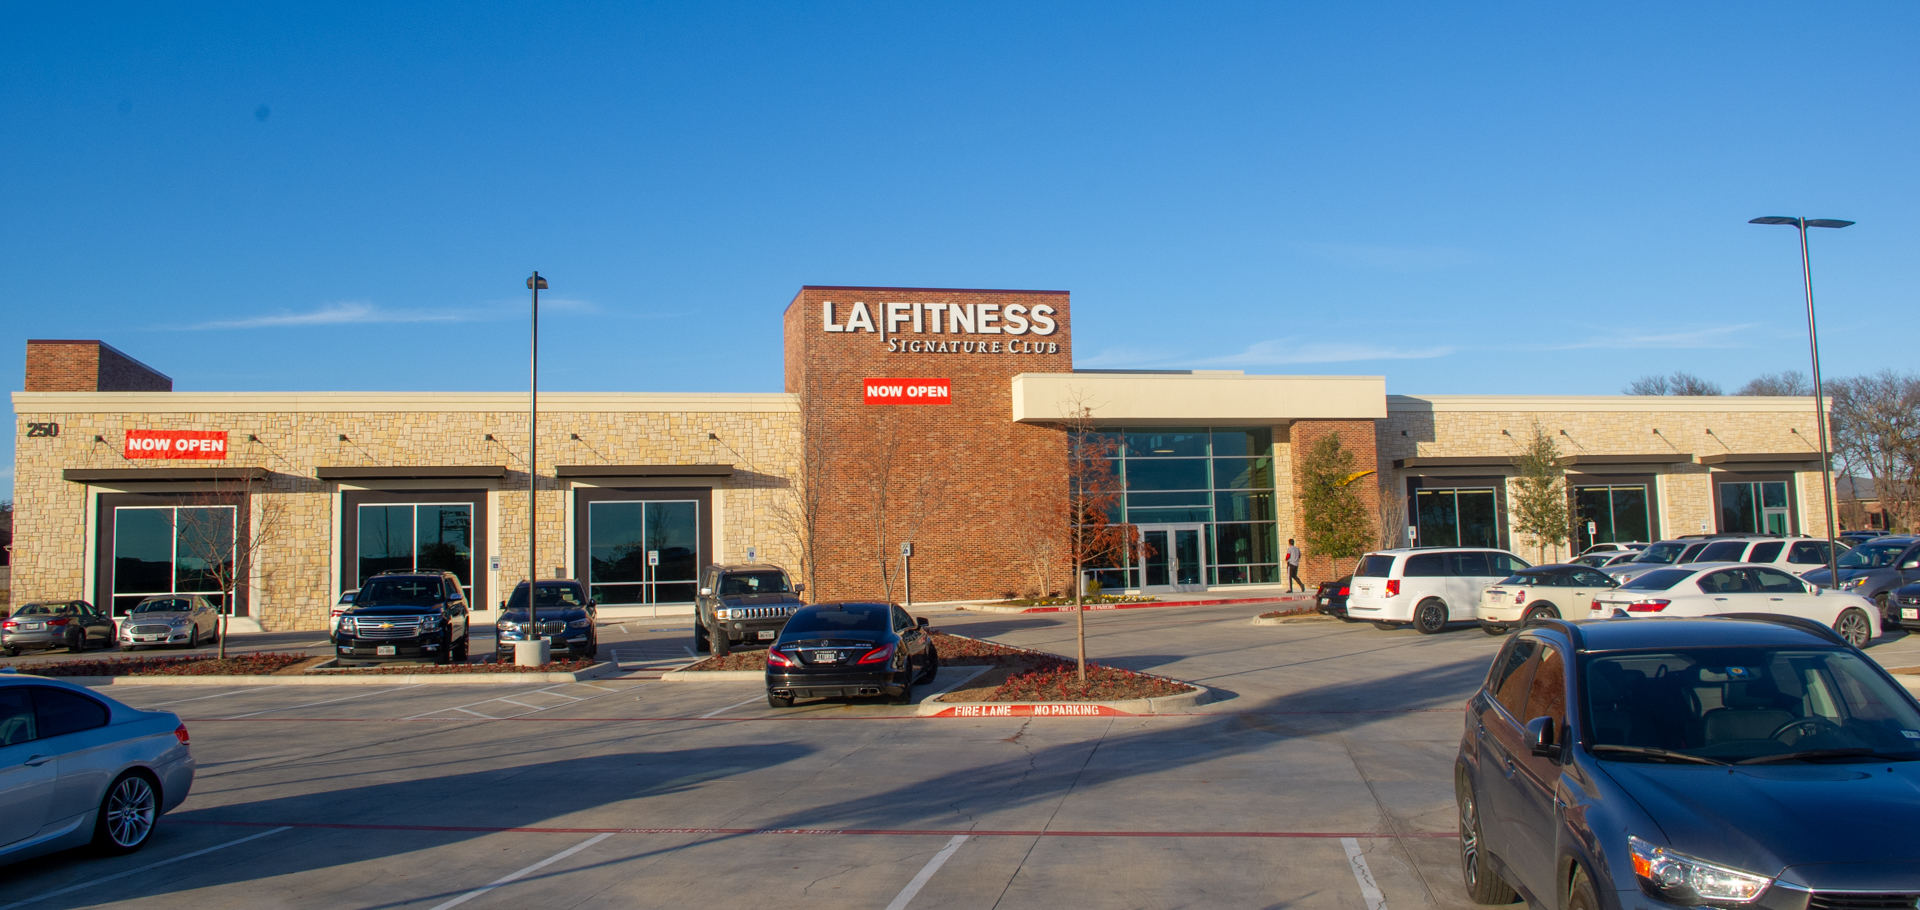 LA Fitness - Coppell, TX